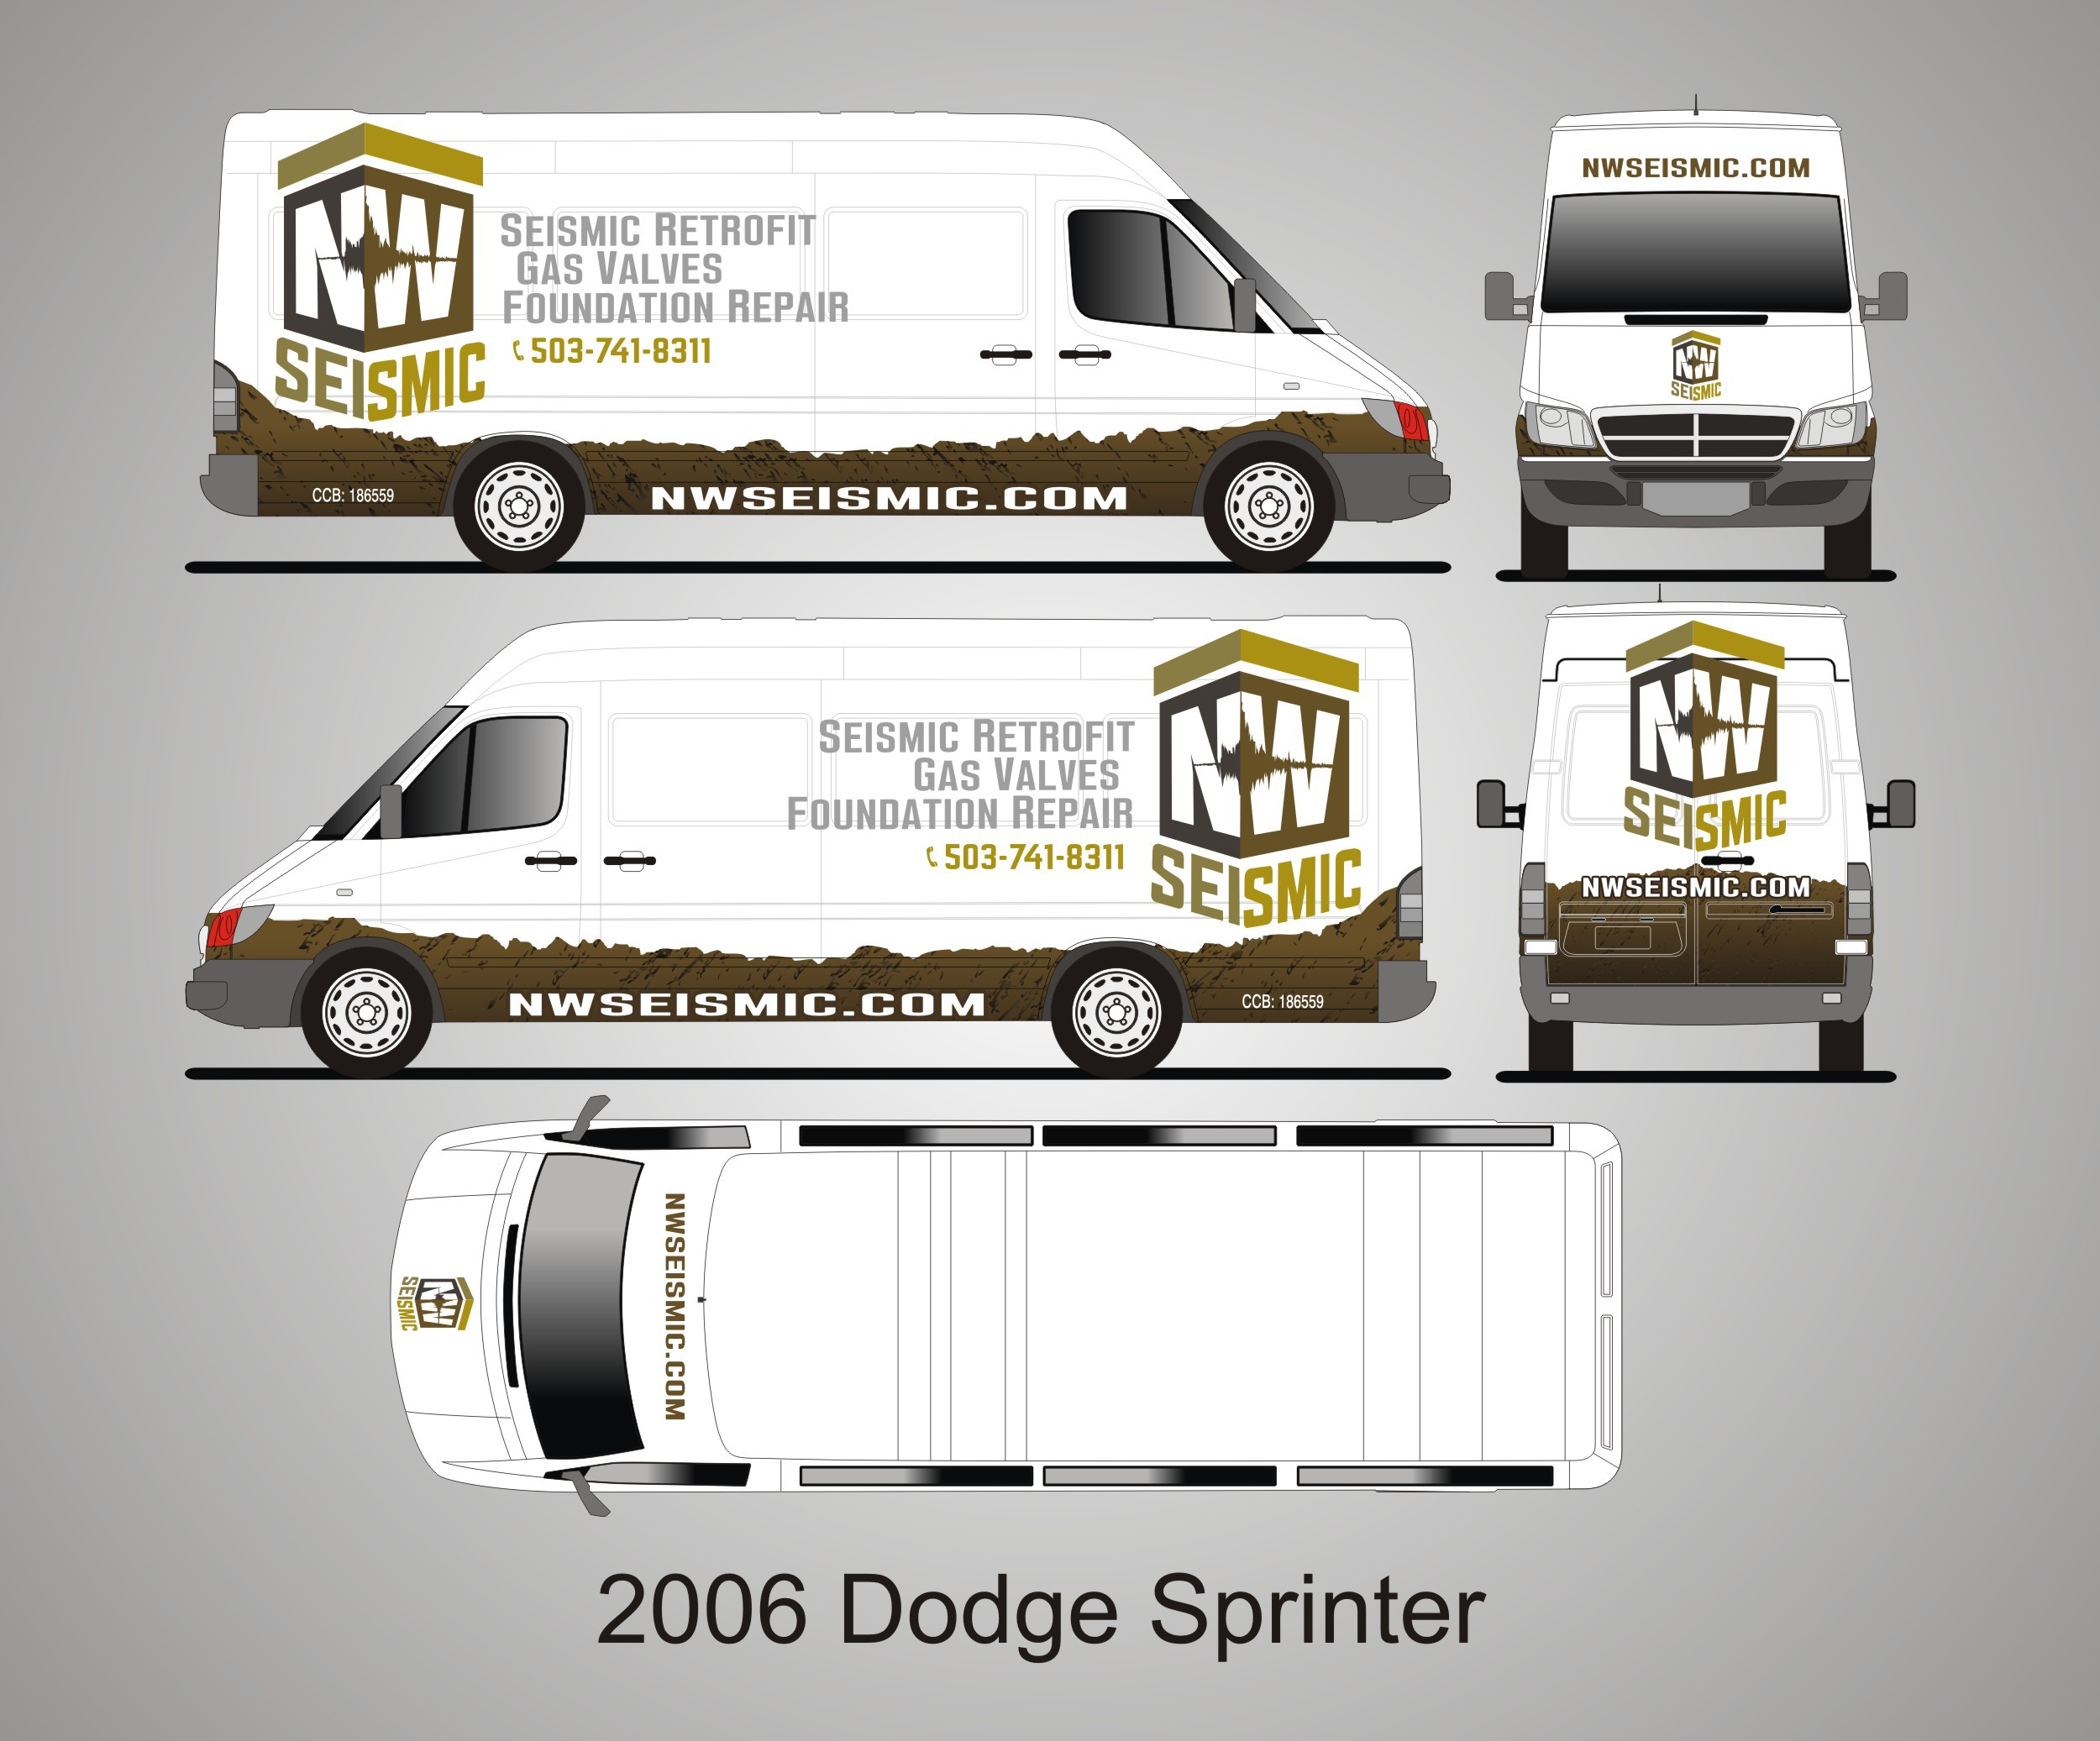 Design a vehicle wrap for NW Seismic, a  company that makes houses safer for earthquakes.